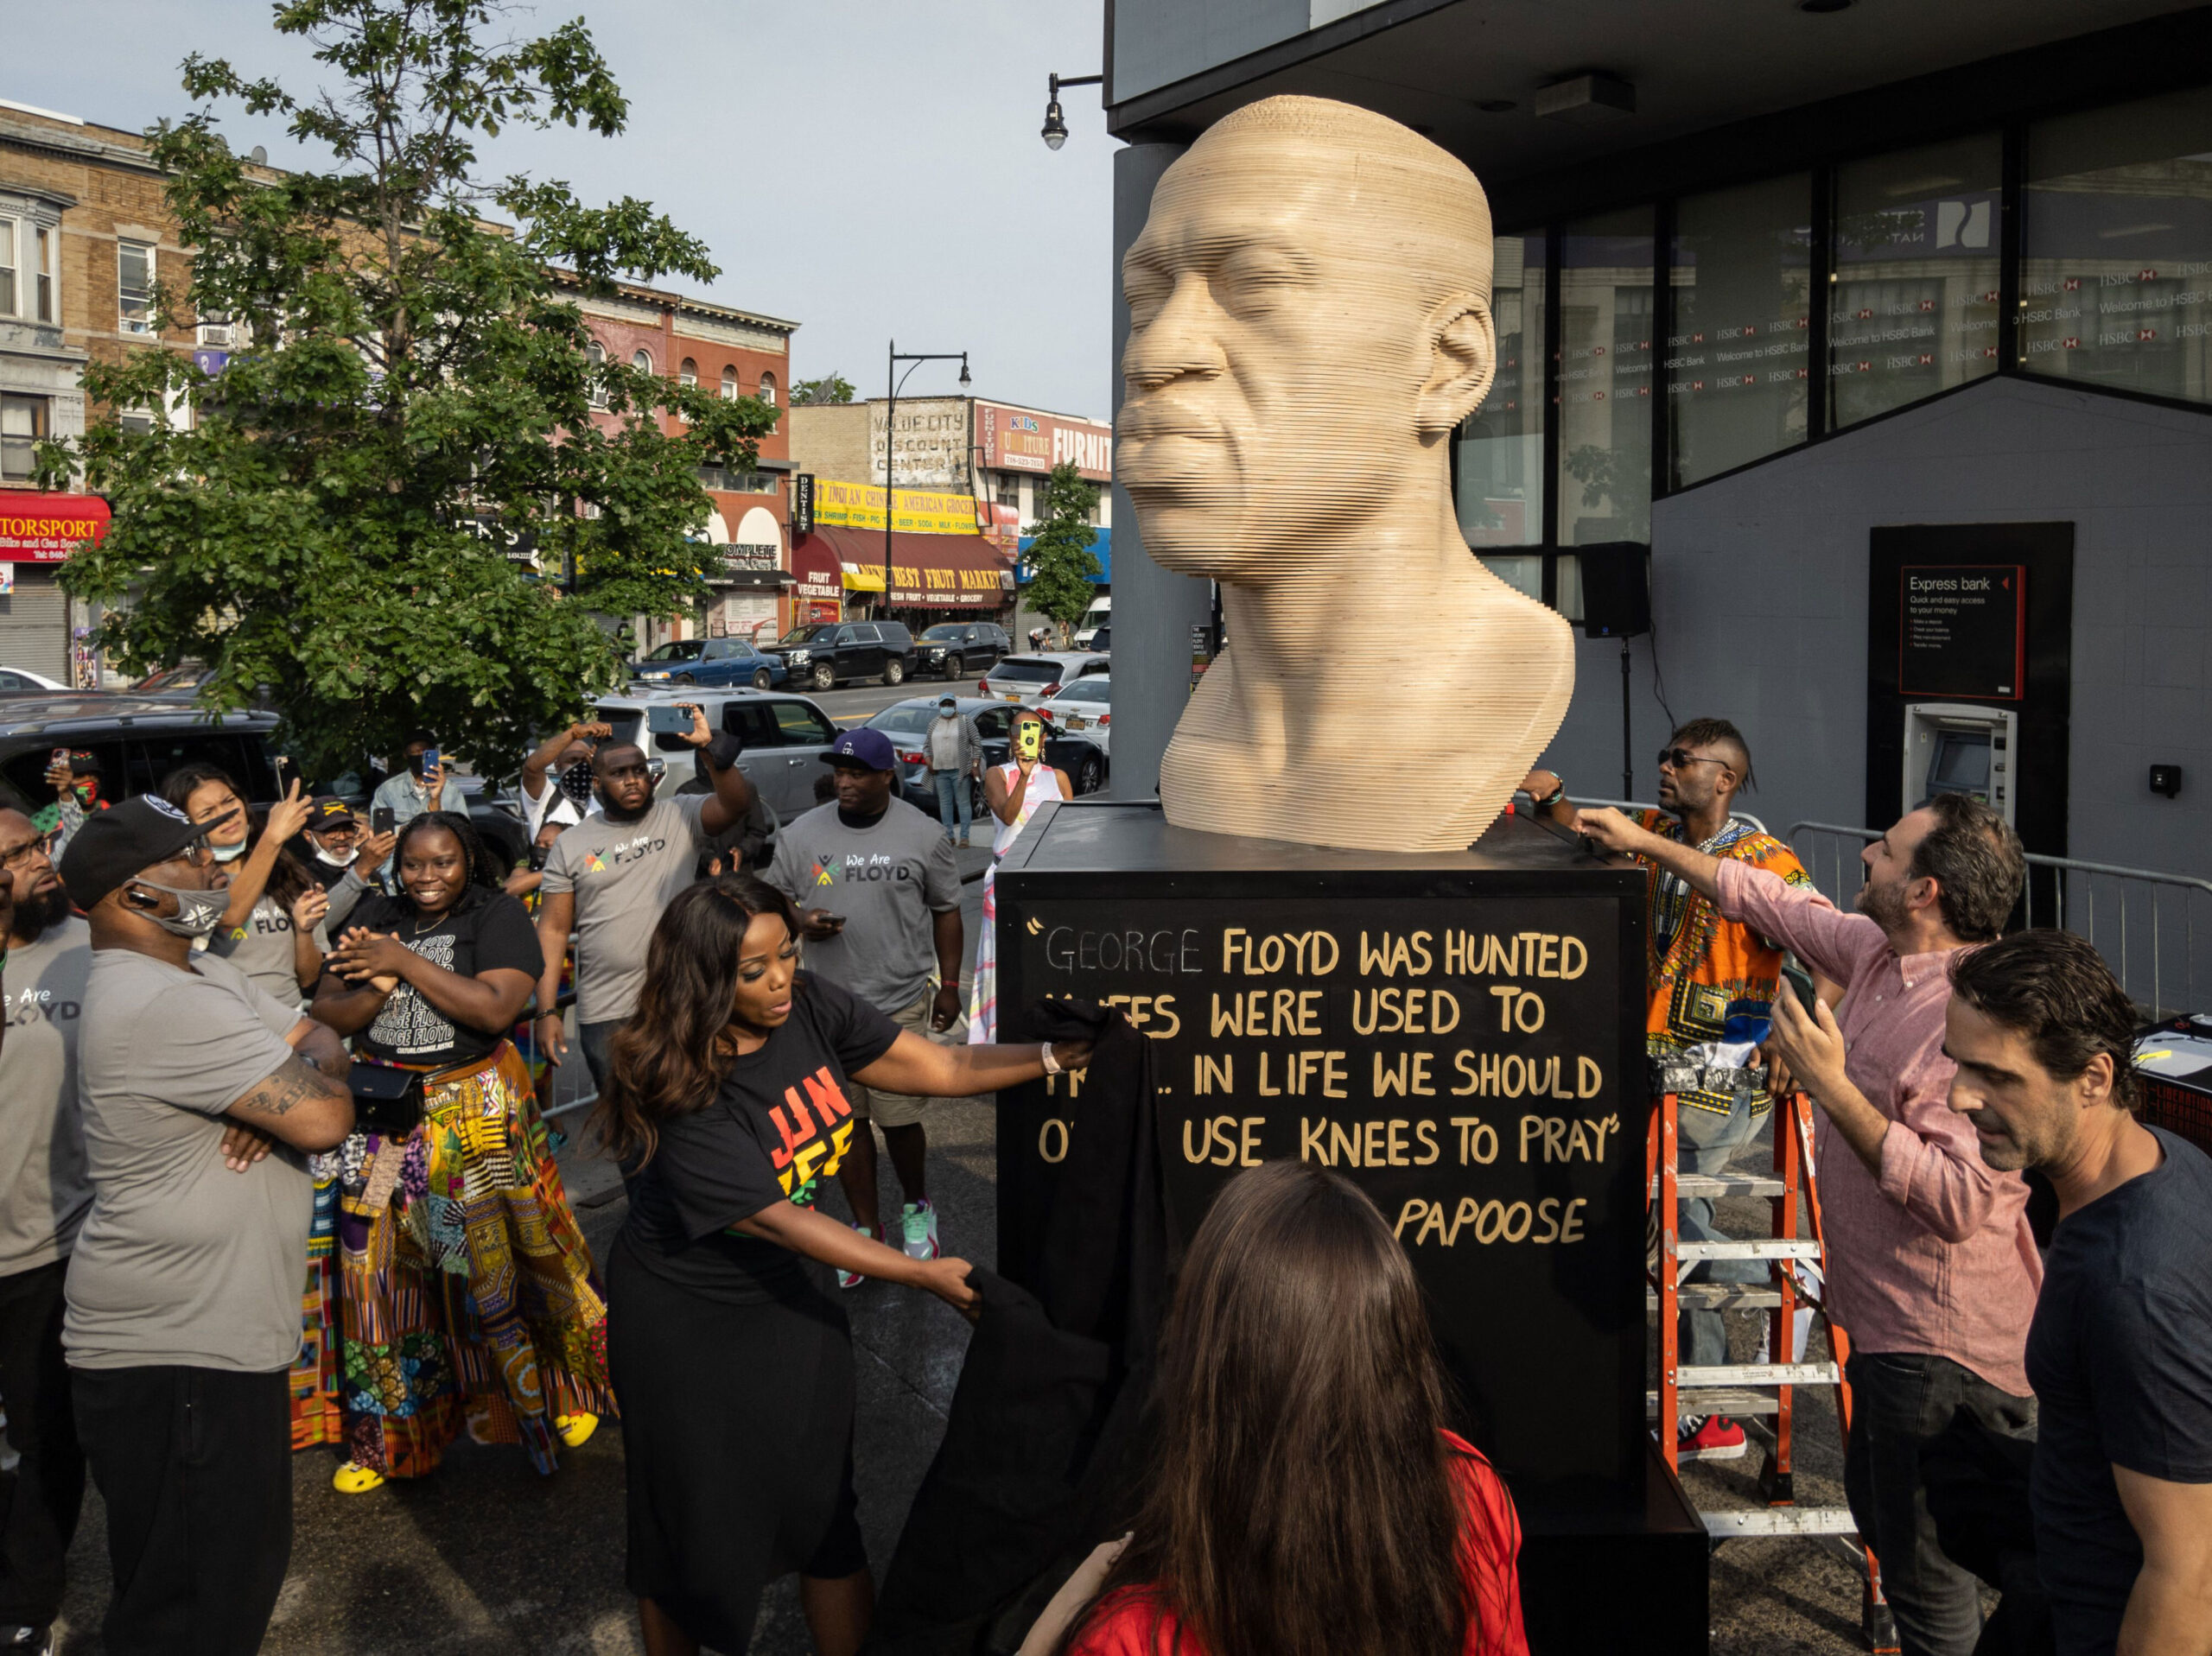 <i>Ed Jones/AFP/Getty Images</i><br/>A statue of George Floyd that has been in Brooklyn's Flatbush neighborhood since Juneteenth will be moved on July 26 -- first back to the studio for refurbishment and then to Manhattan's Union Square Park in September as planned